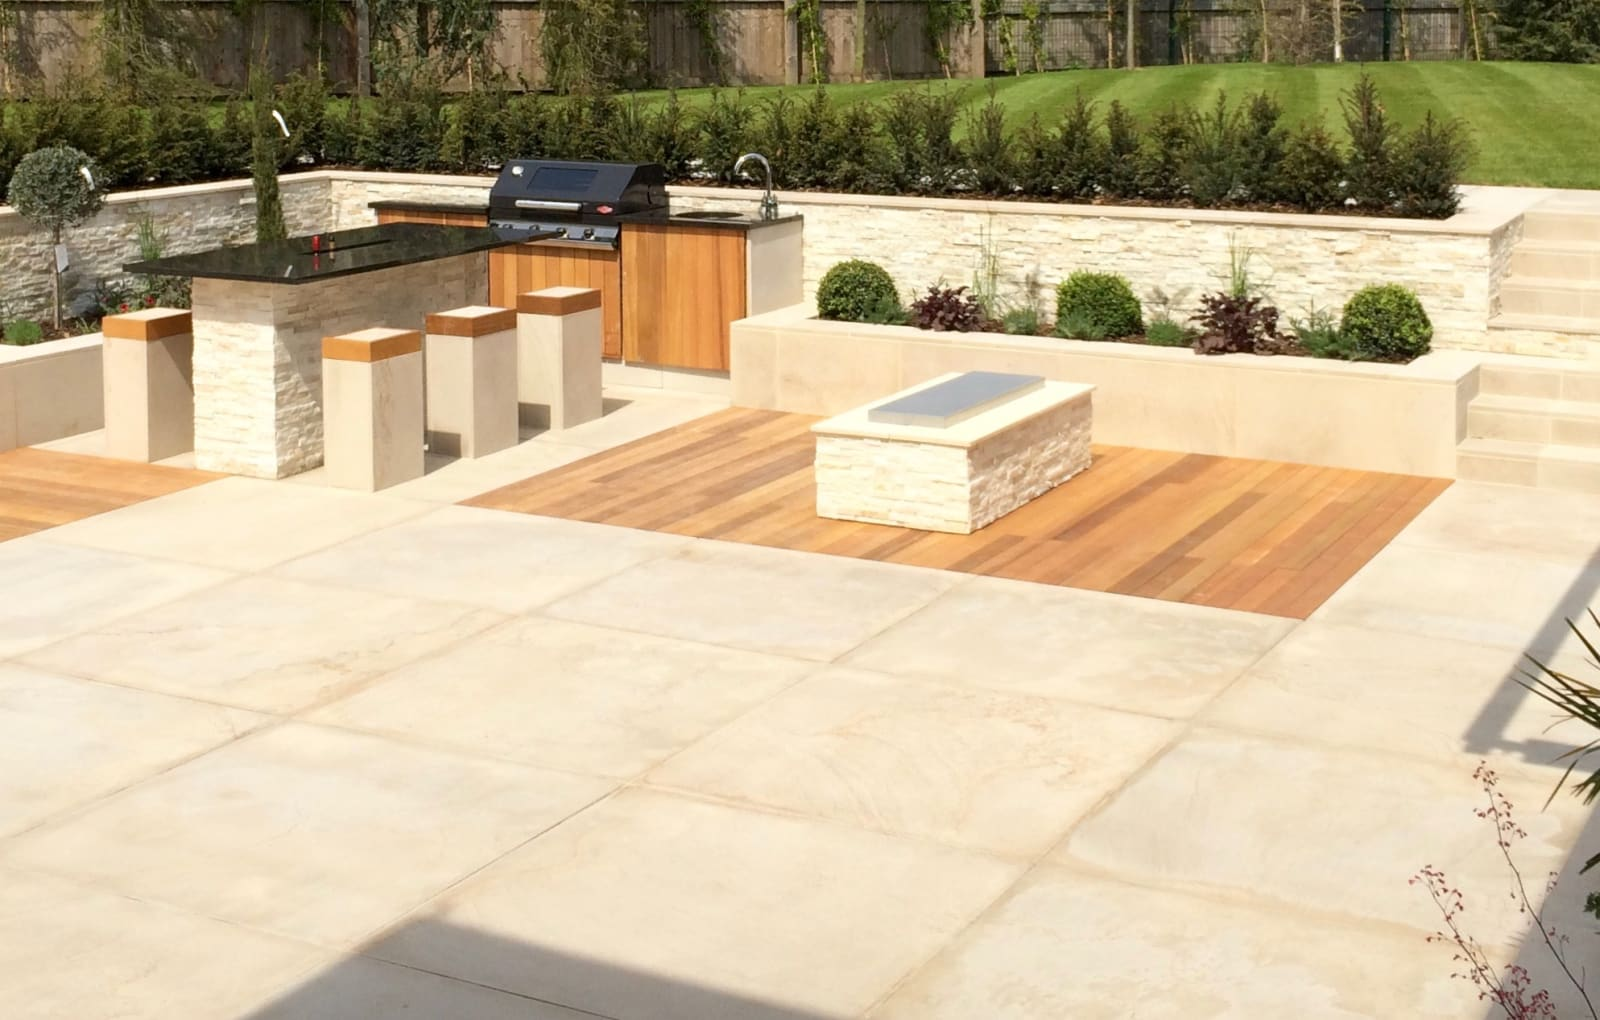 Symphony paving in Basalt and Stoneface Drysack in Nero Quartize